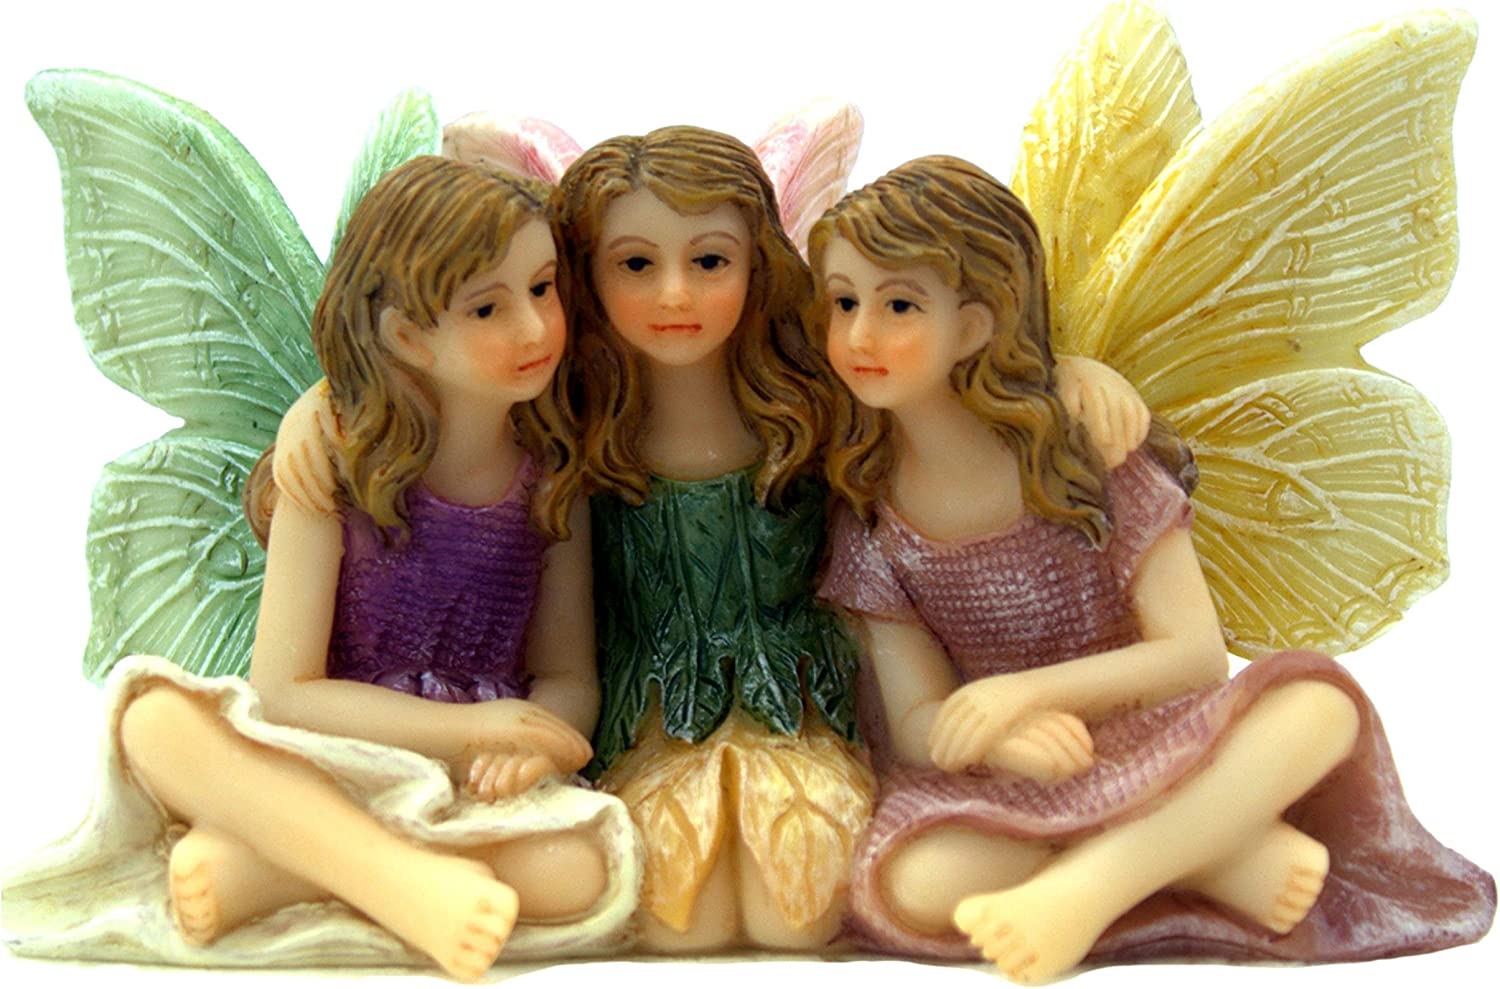 PRETMANNS Fairy Garden Fairies – Fairy Figurines – 3 Gorgeous Sitting Fairies – Forever Friends Fairy Garden Supplies 1 Piece